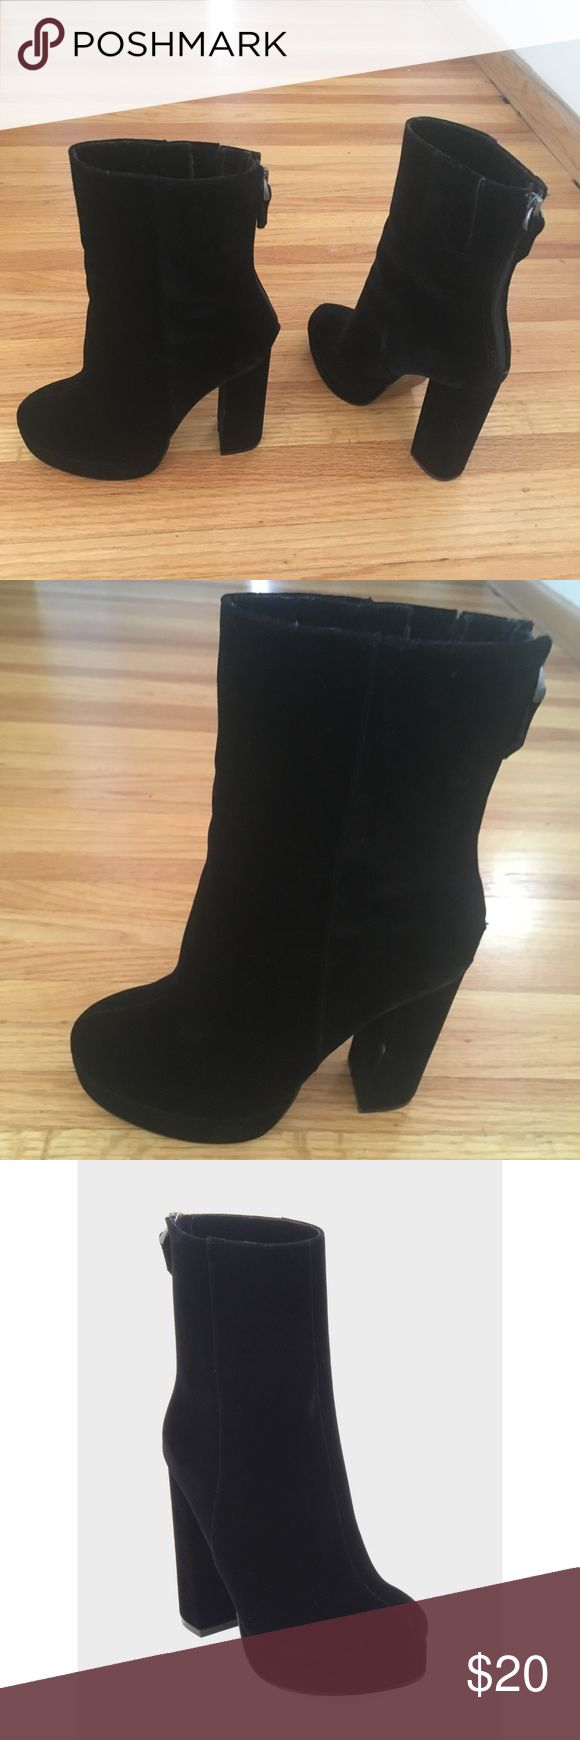 """Black Velvet Platform Boot Gorgeous velvet platform boots had me feeling like David Bowie... swoon. Worn once. Tiny imperfection on heel. 4.7"""" heel... not for the faint of heart. Who What Wear Shoes Ankle Boots & Booties"""